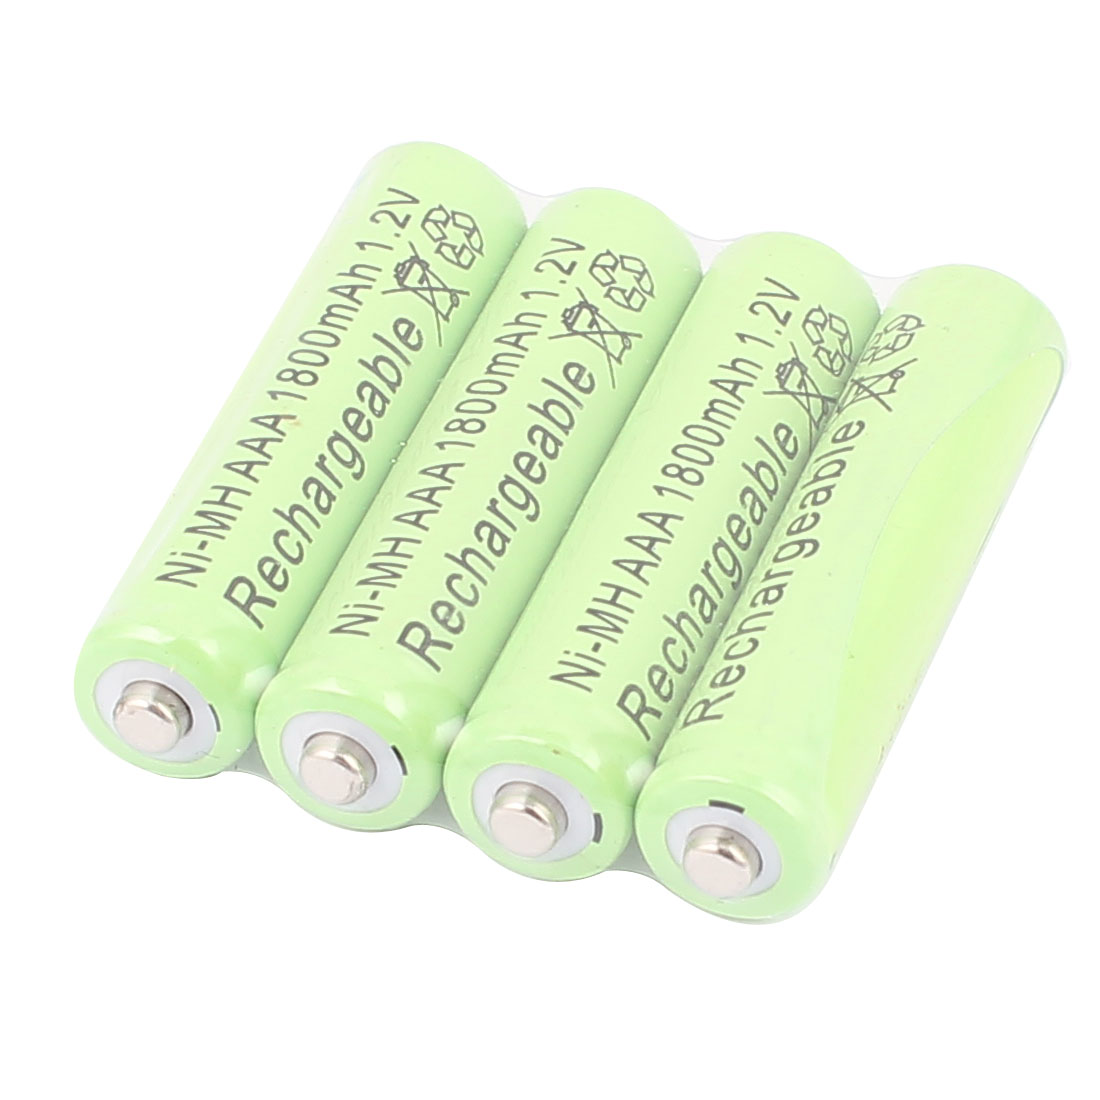 4 Pcs Ni-MH AAA 1800mAh 1.2V Rechargeable Batteries Ultra cell Battery Green